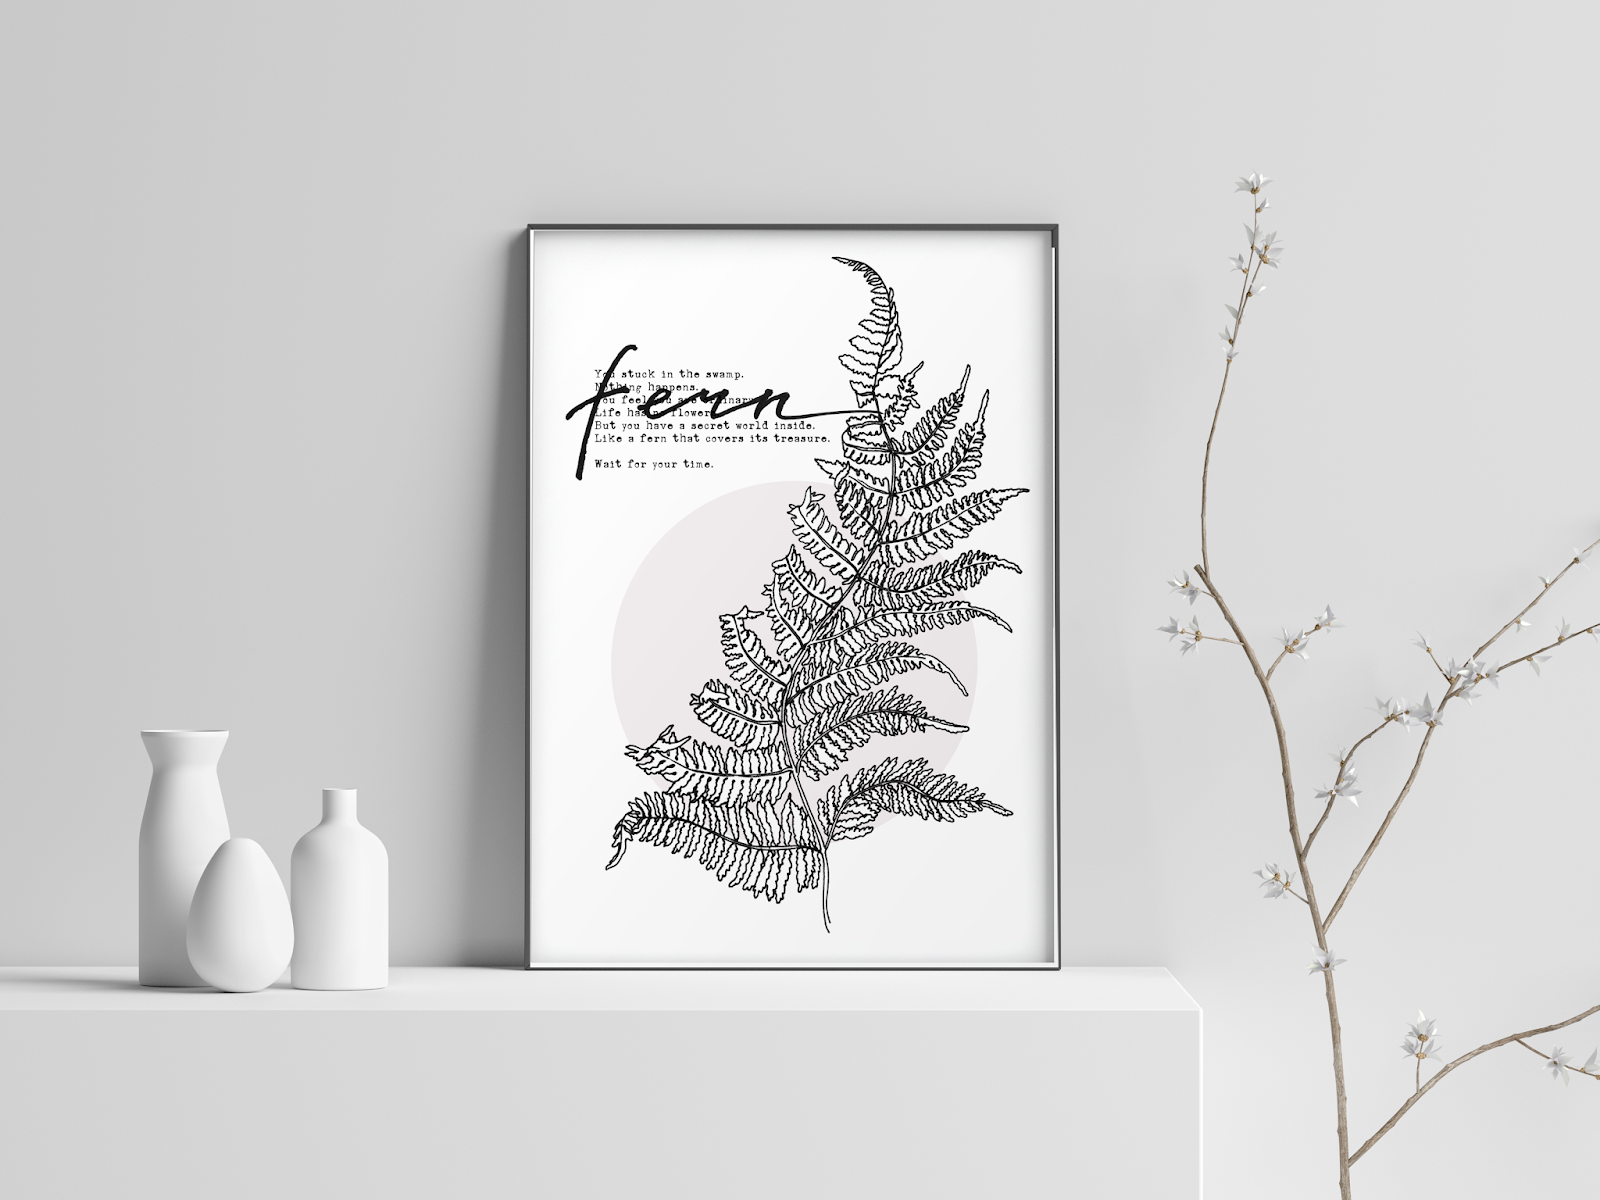 Sonia Nezvetaeva, Fern, Leaf, graphic, black and white, motivation quote, Wait for your time